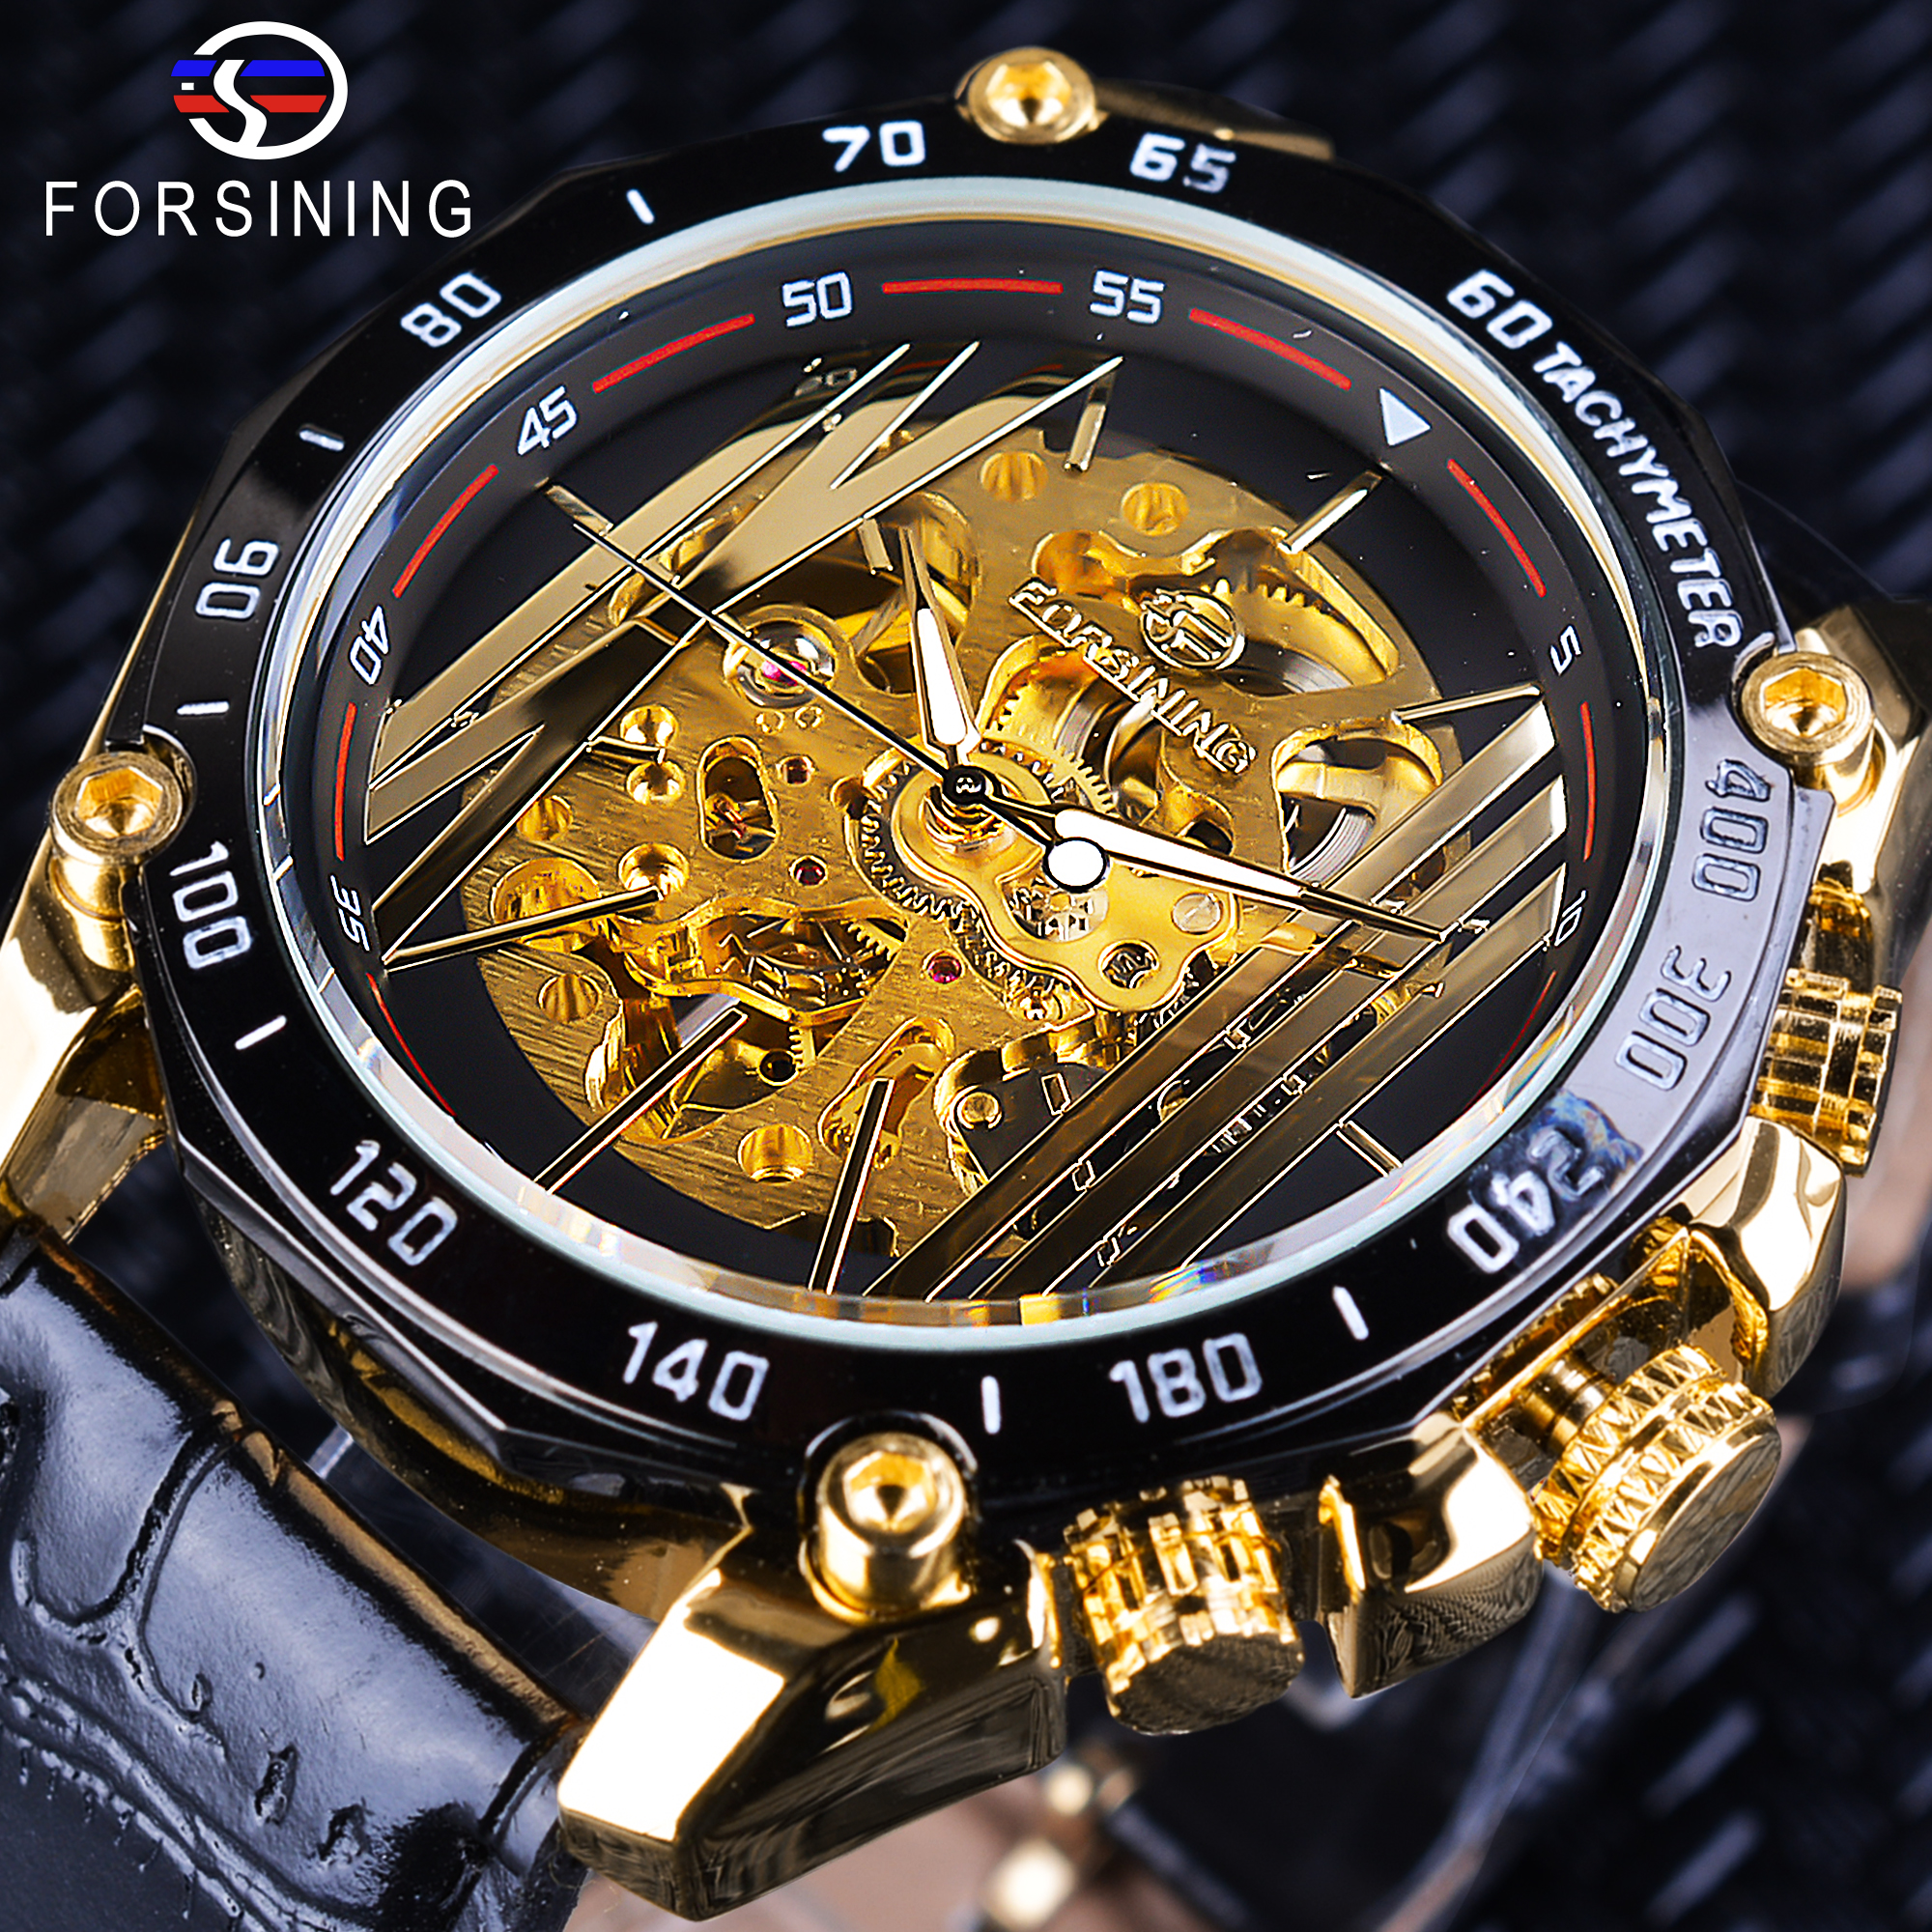 Forsining Big Dial Steampunk Design Luxury Golden Gear Movement Men Creative Openwork Watches Automatic Mechanical Wrist Watches